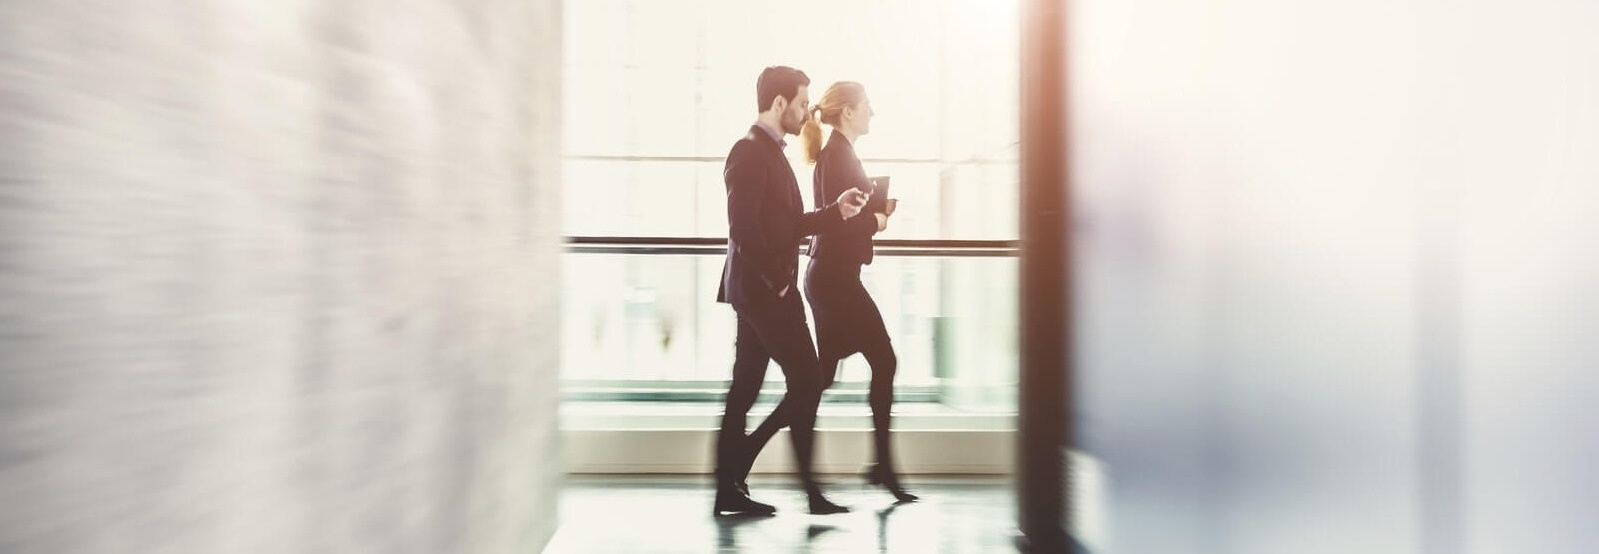 3 Benefits of Partnering with the Right Staffing Agency